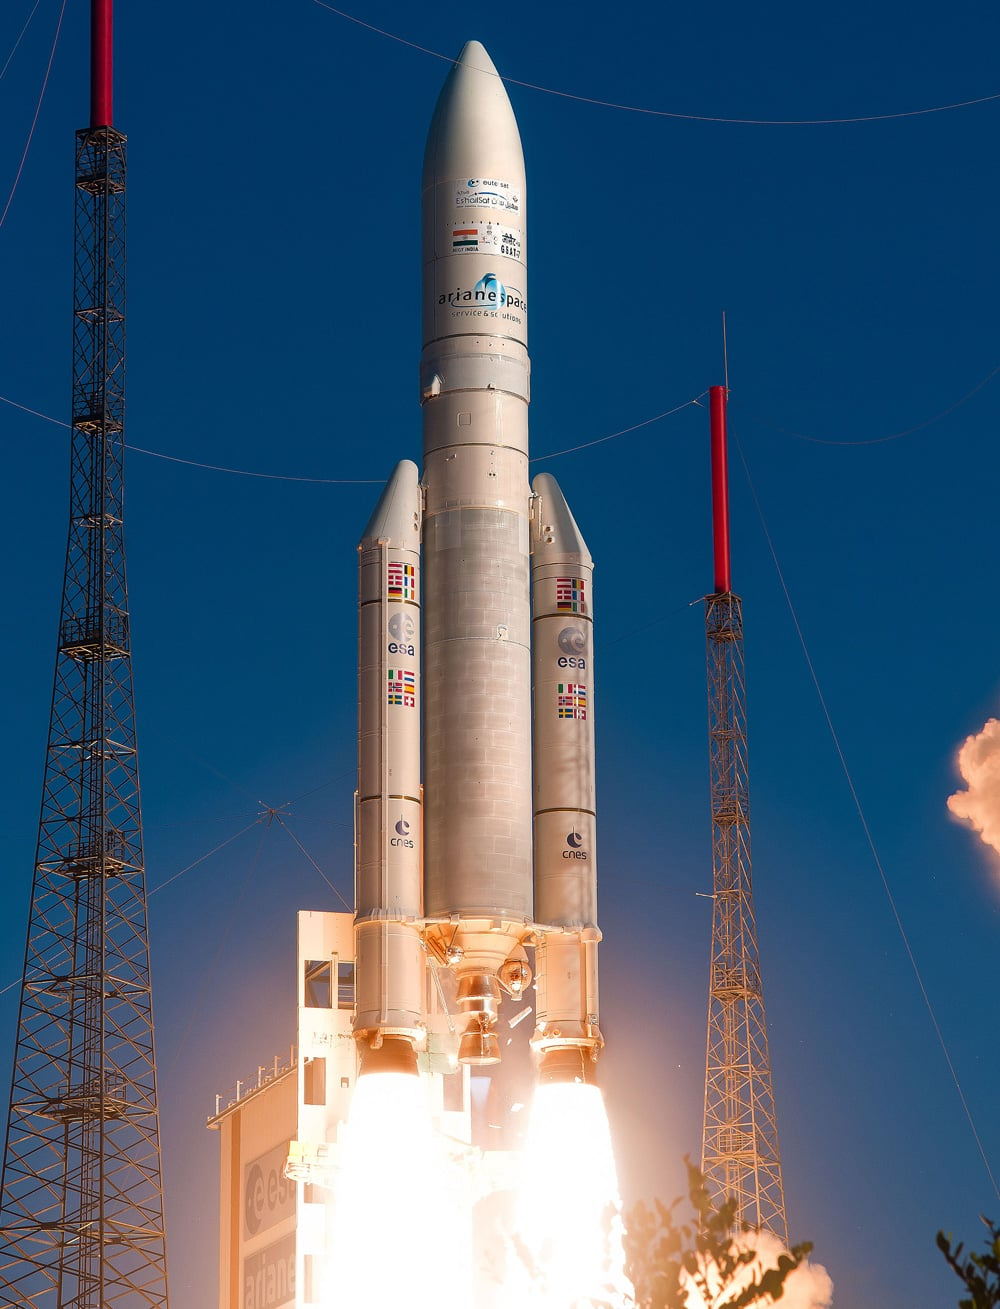 An Ariane 5 rocket is launched in Kourou, French Guiana. India's first exclusive defence satellite, the GSAT-7, was successfully launched, and according to news reports the satellite is expected to give a major push to the country's maritime security.